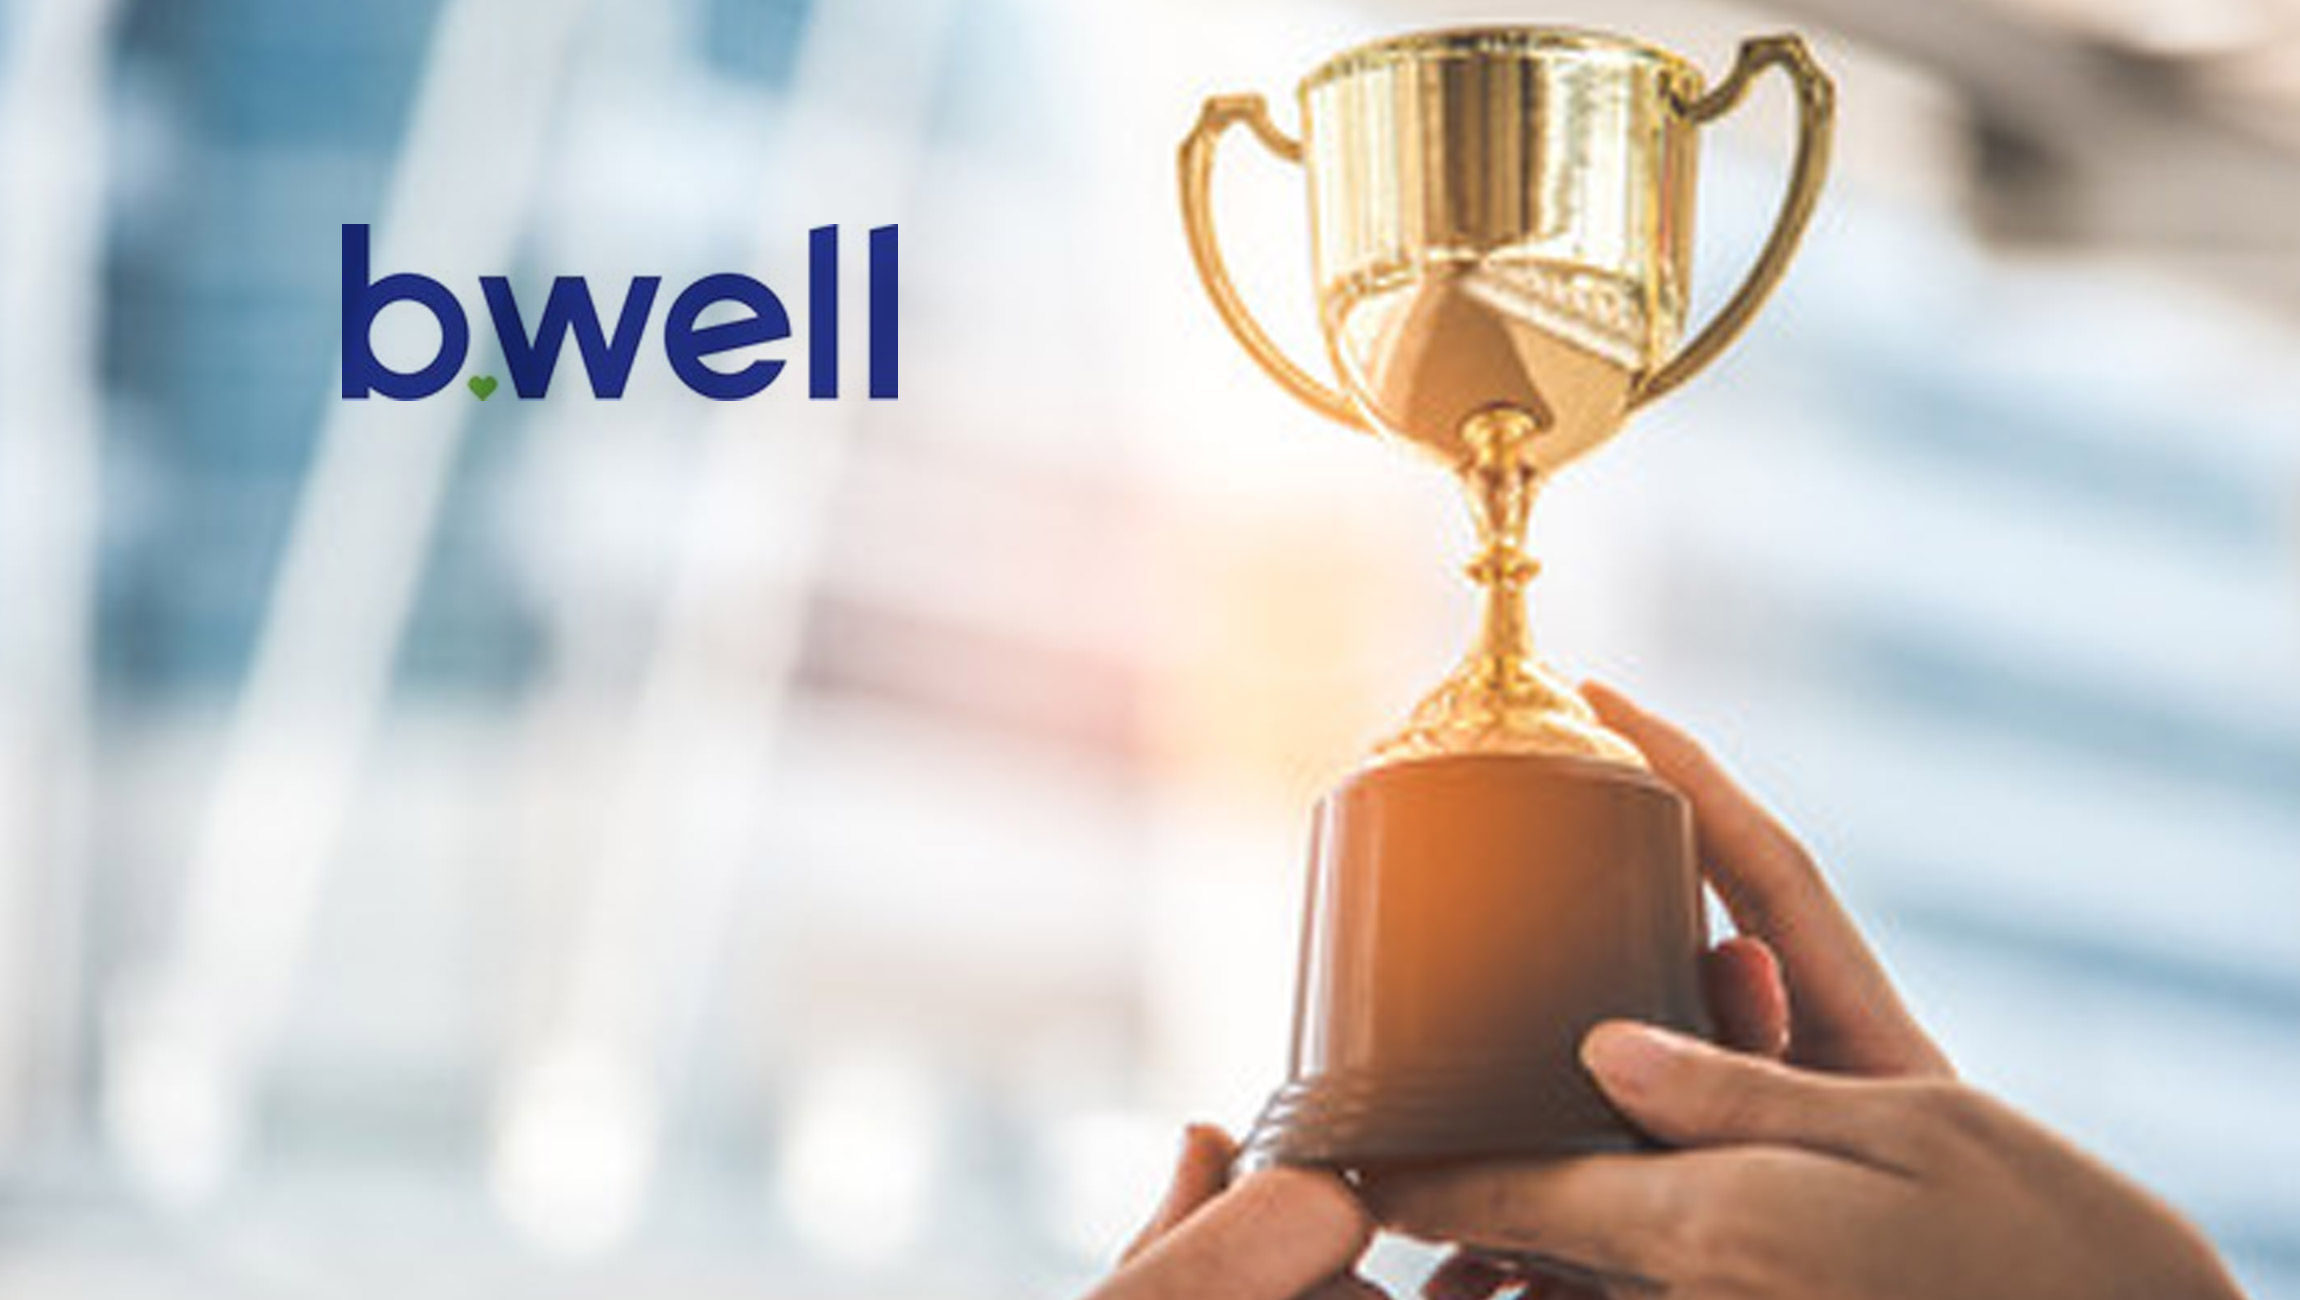 b.well-Connected-Health-Wins-Juniper-Research's-Future-Digital-Health-Innovation-Award